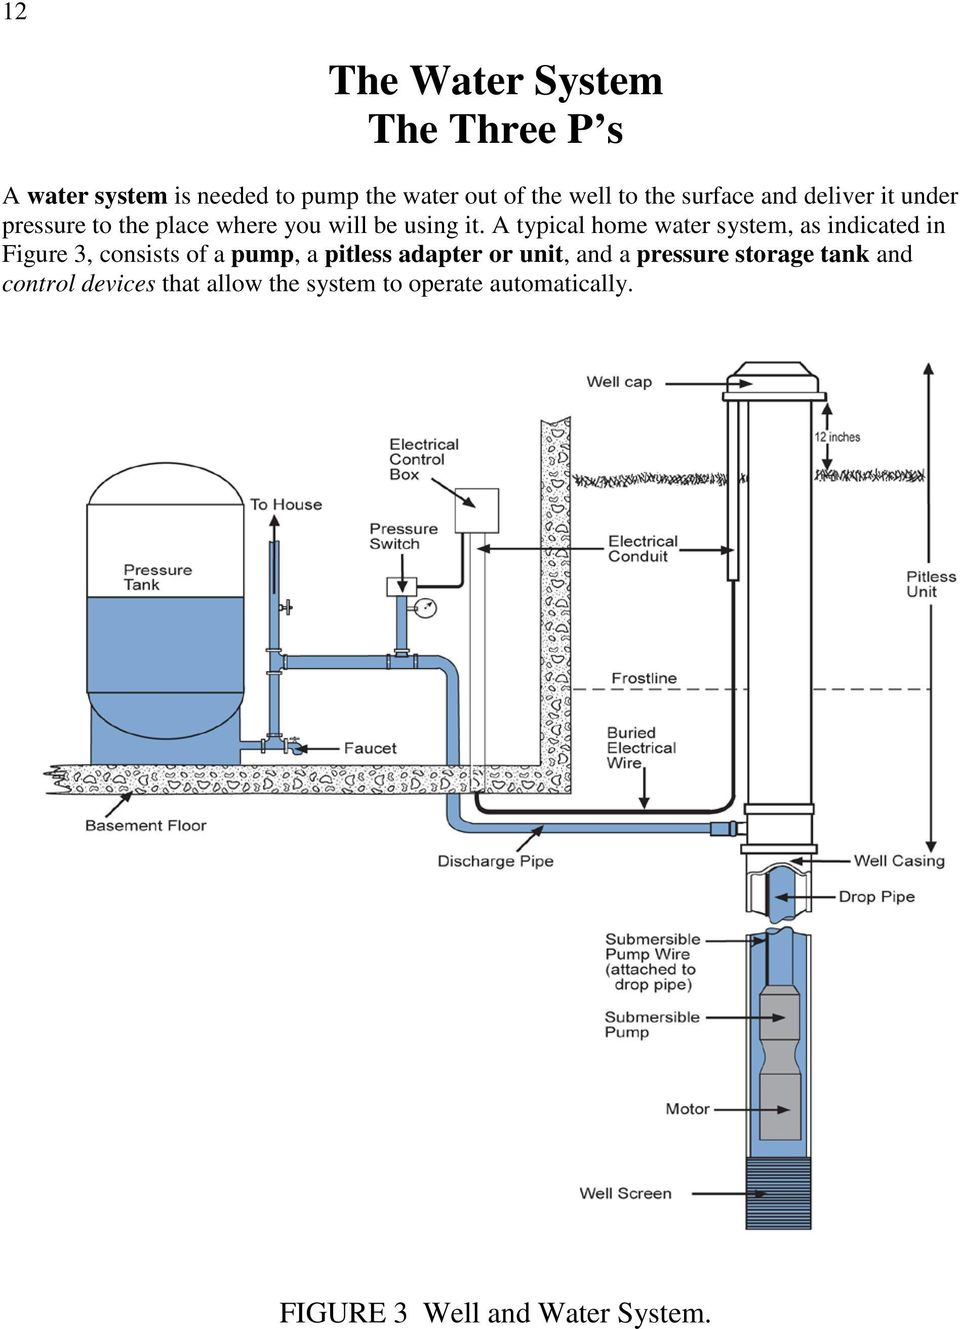 A typical home water system, as indicated in Figure 3, consists of a pump, a pitless adapter or unit,